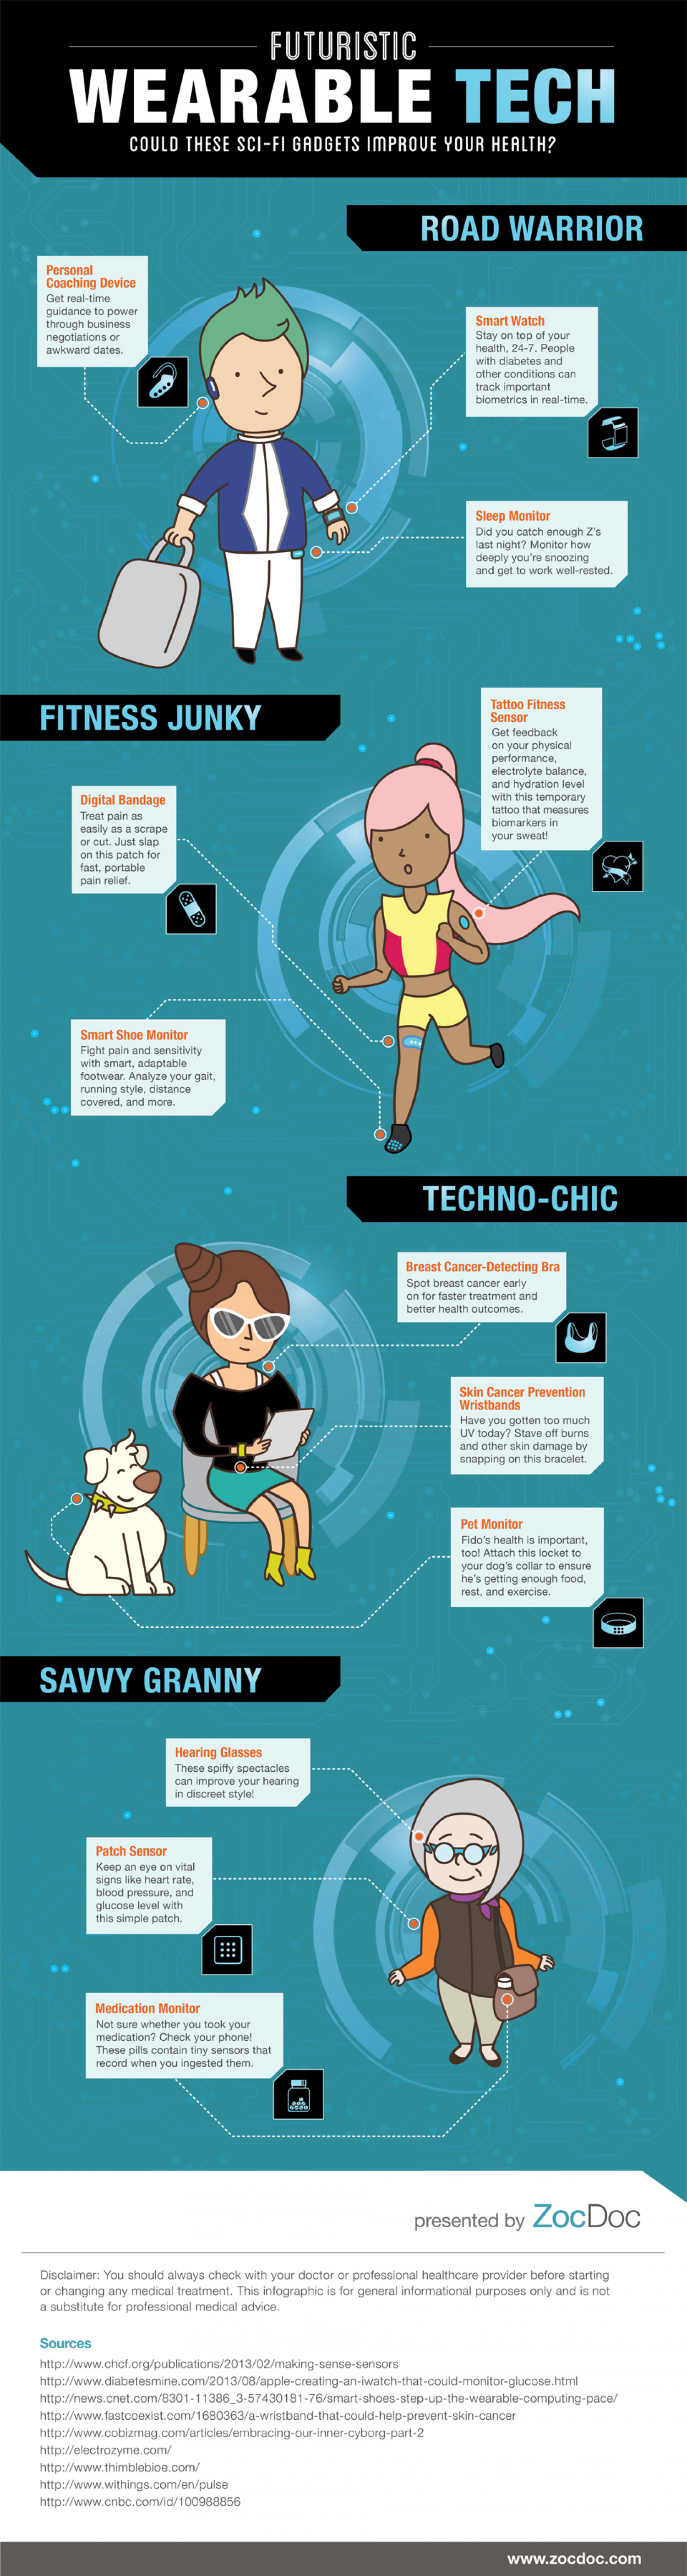 Wearables and the Future of Healthcare Infographic